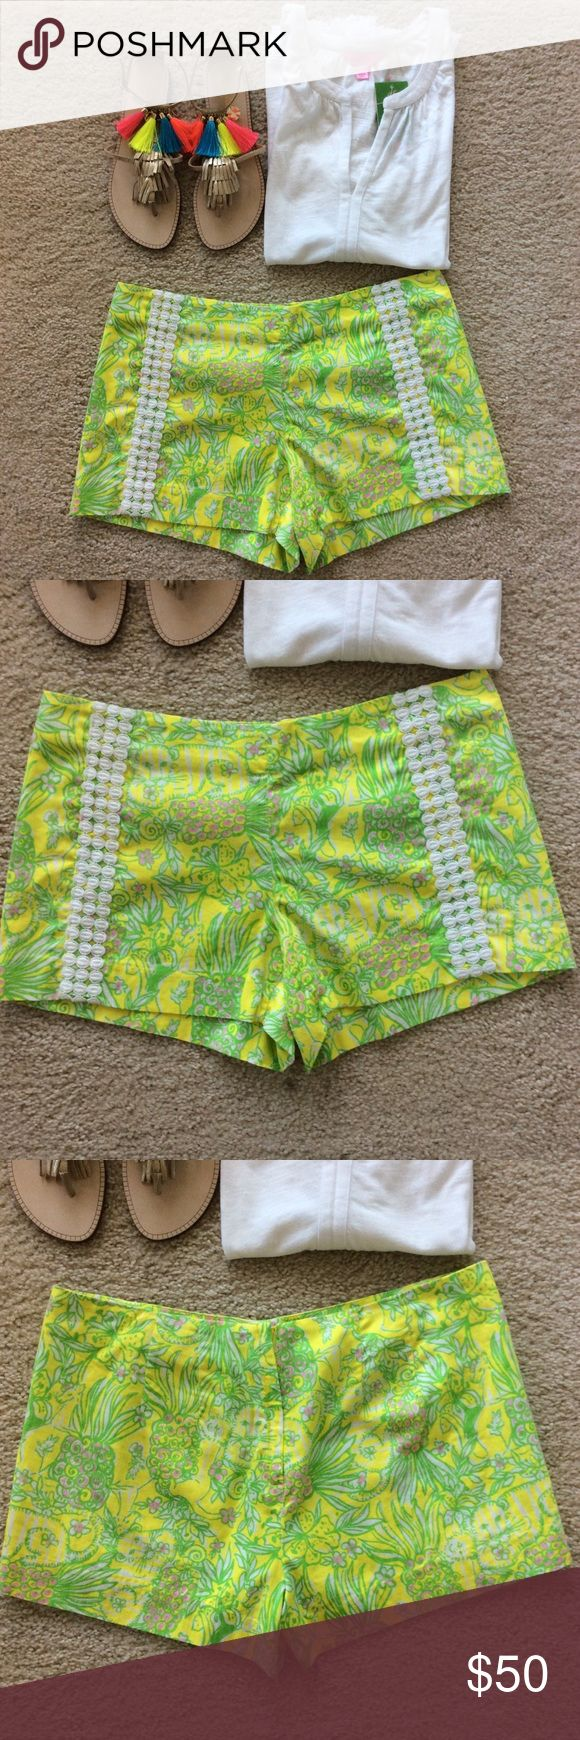 """Lilly Pulitzer Liza Short Lilly Pulitzer Liza Short. Super cute print, bright yellow and lime green colors. Lace detail down the sides. Back zip and button closure. Laying flat waist approx 16.5"""" across. 3"""" inseam. 100% cotton. Size 8. Excellent condition. 💕Stock pic is the same style, not the same print 💕 Lilly Pulitzer Shorts"""